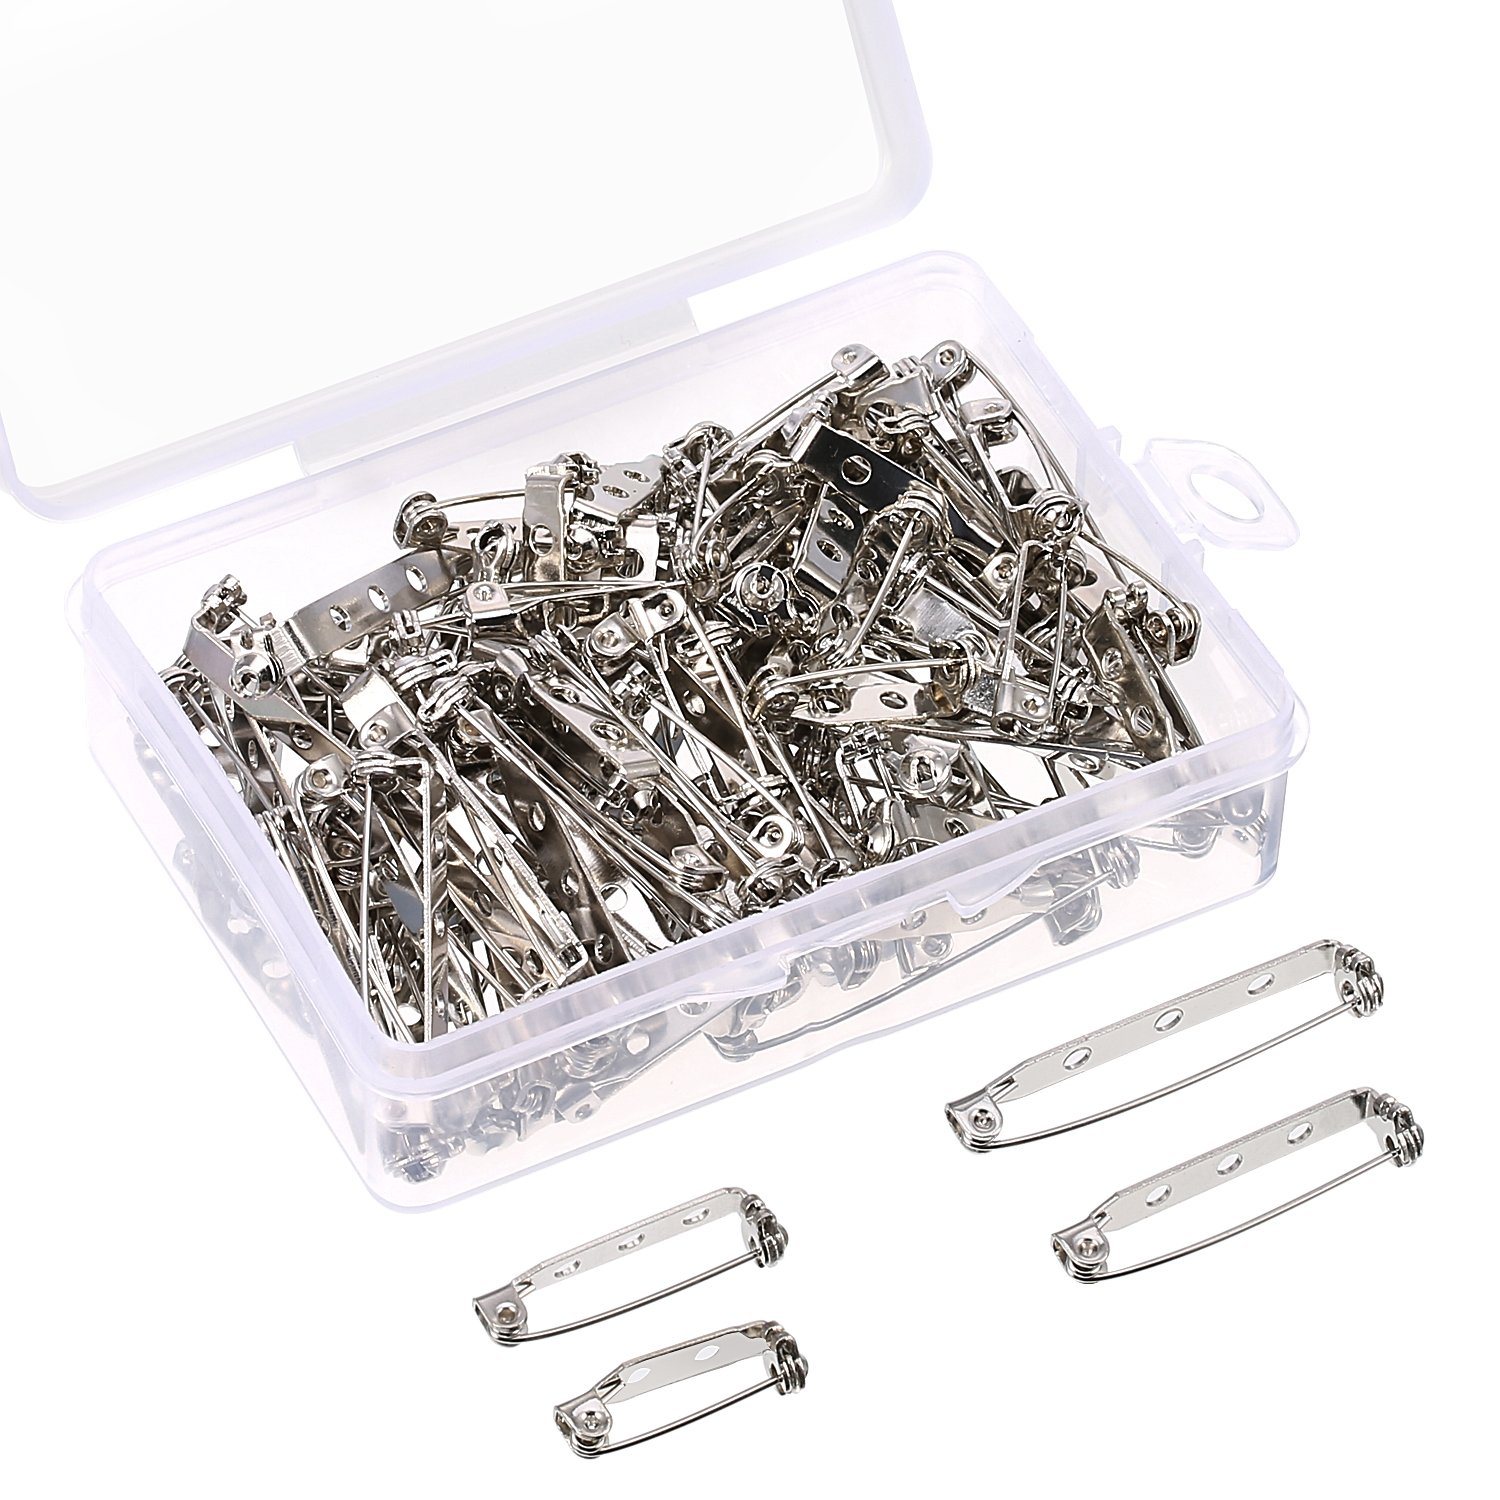 Shappy 100 Pieces Bar Pins Brooch Pin Backs Safety Clasp with Plastic Box, 4 Sizes 20 mm, 25 mm, 32 mm and 38 mm (Silver)